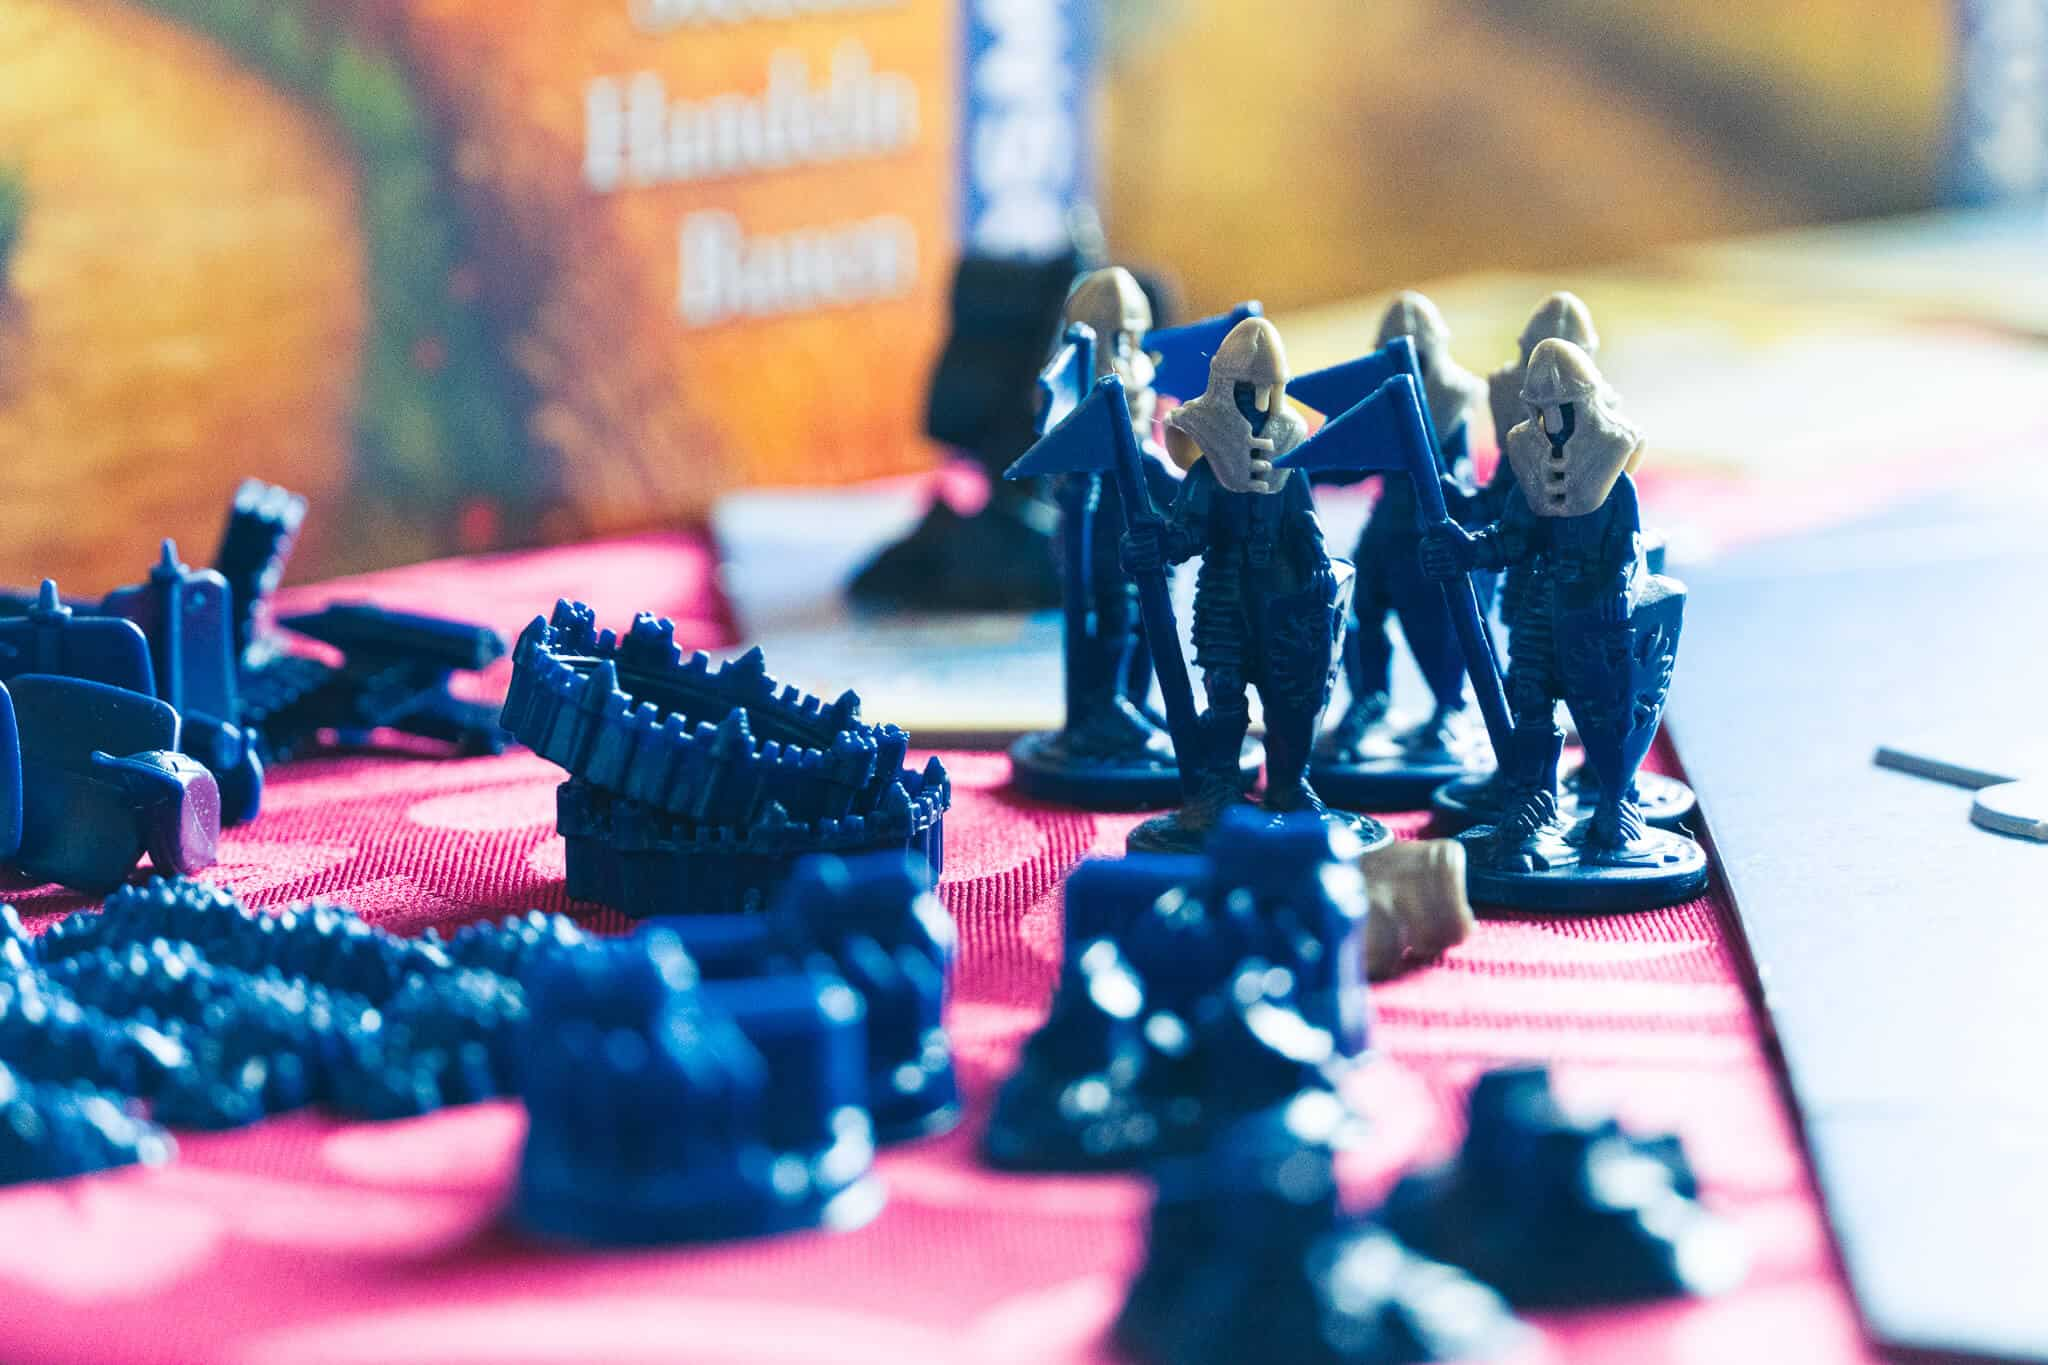 Catan blaue Figuren